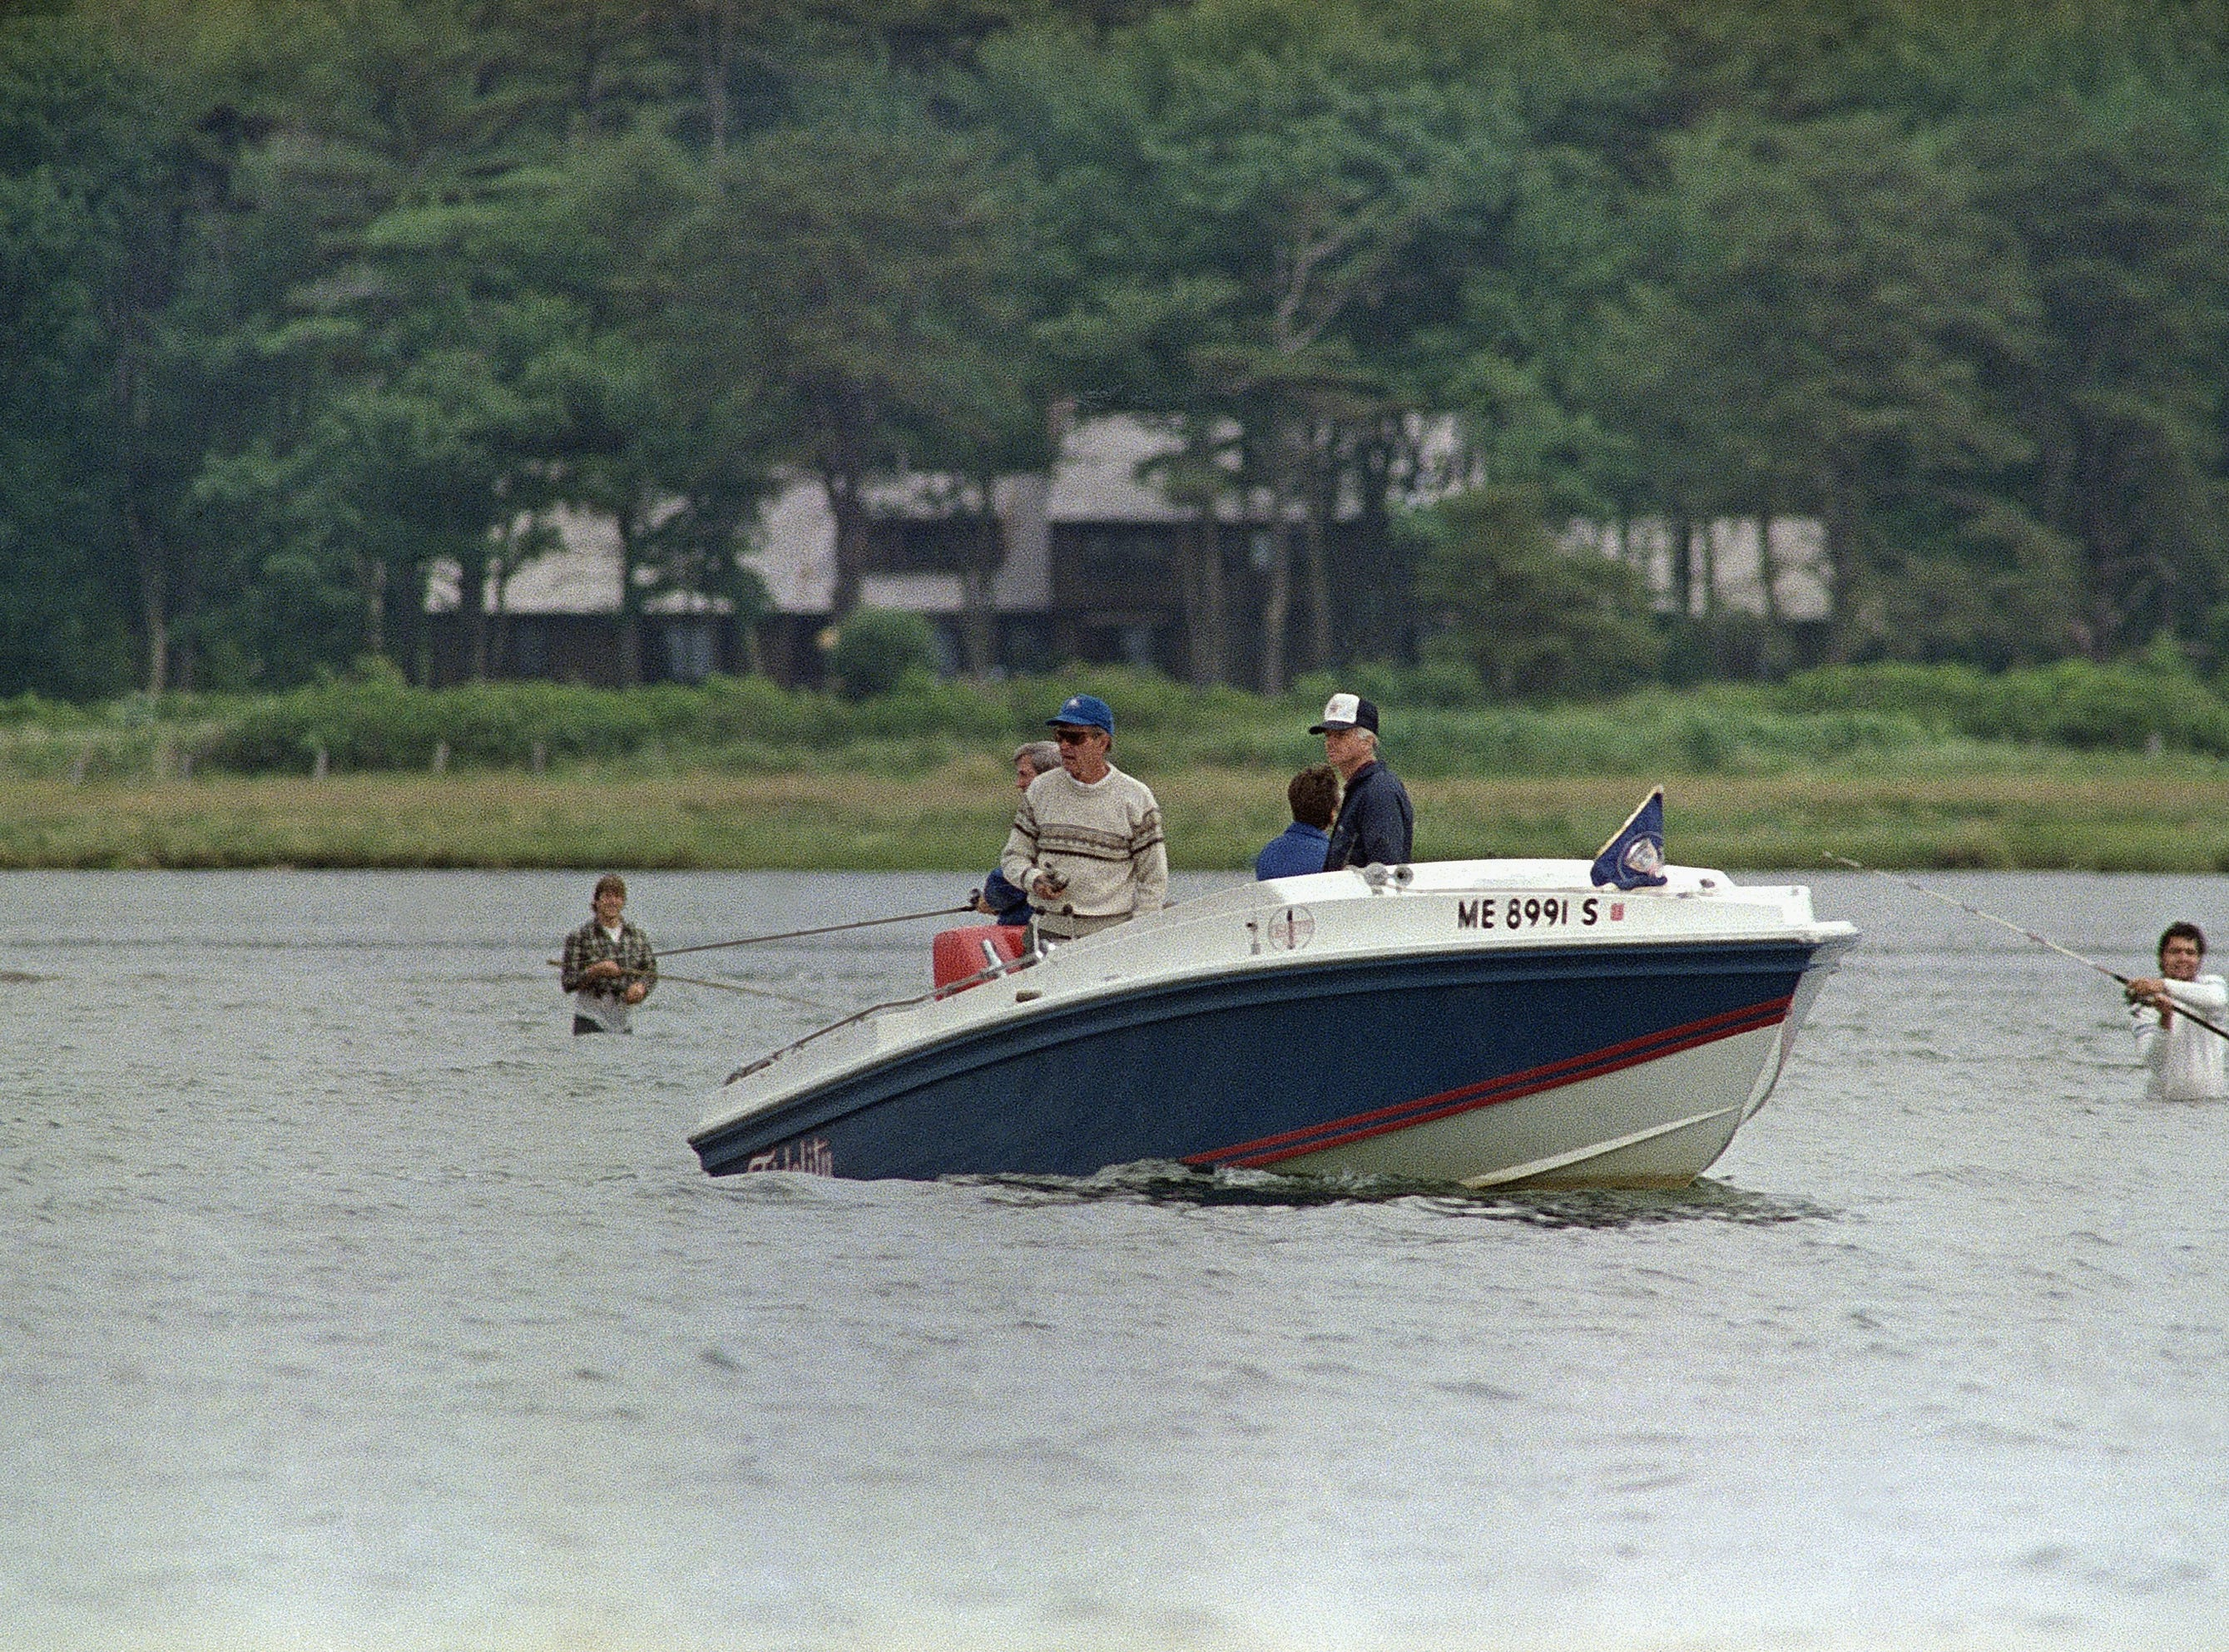 President George H. W. Bush in boaton left, fishes for striped bass at the mouth of the Mousam River in Kennebunk, Maine, Monday, July 3, 1989. Alongside his boat Fidelity, are fishermen in waders trying their luck, too. (AP Photo/Herb Swanson)